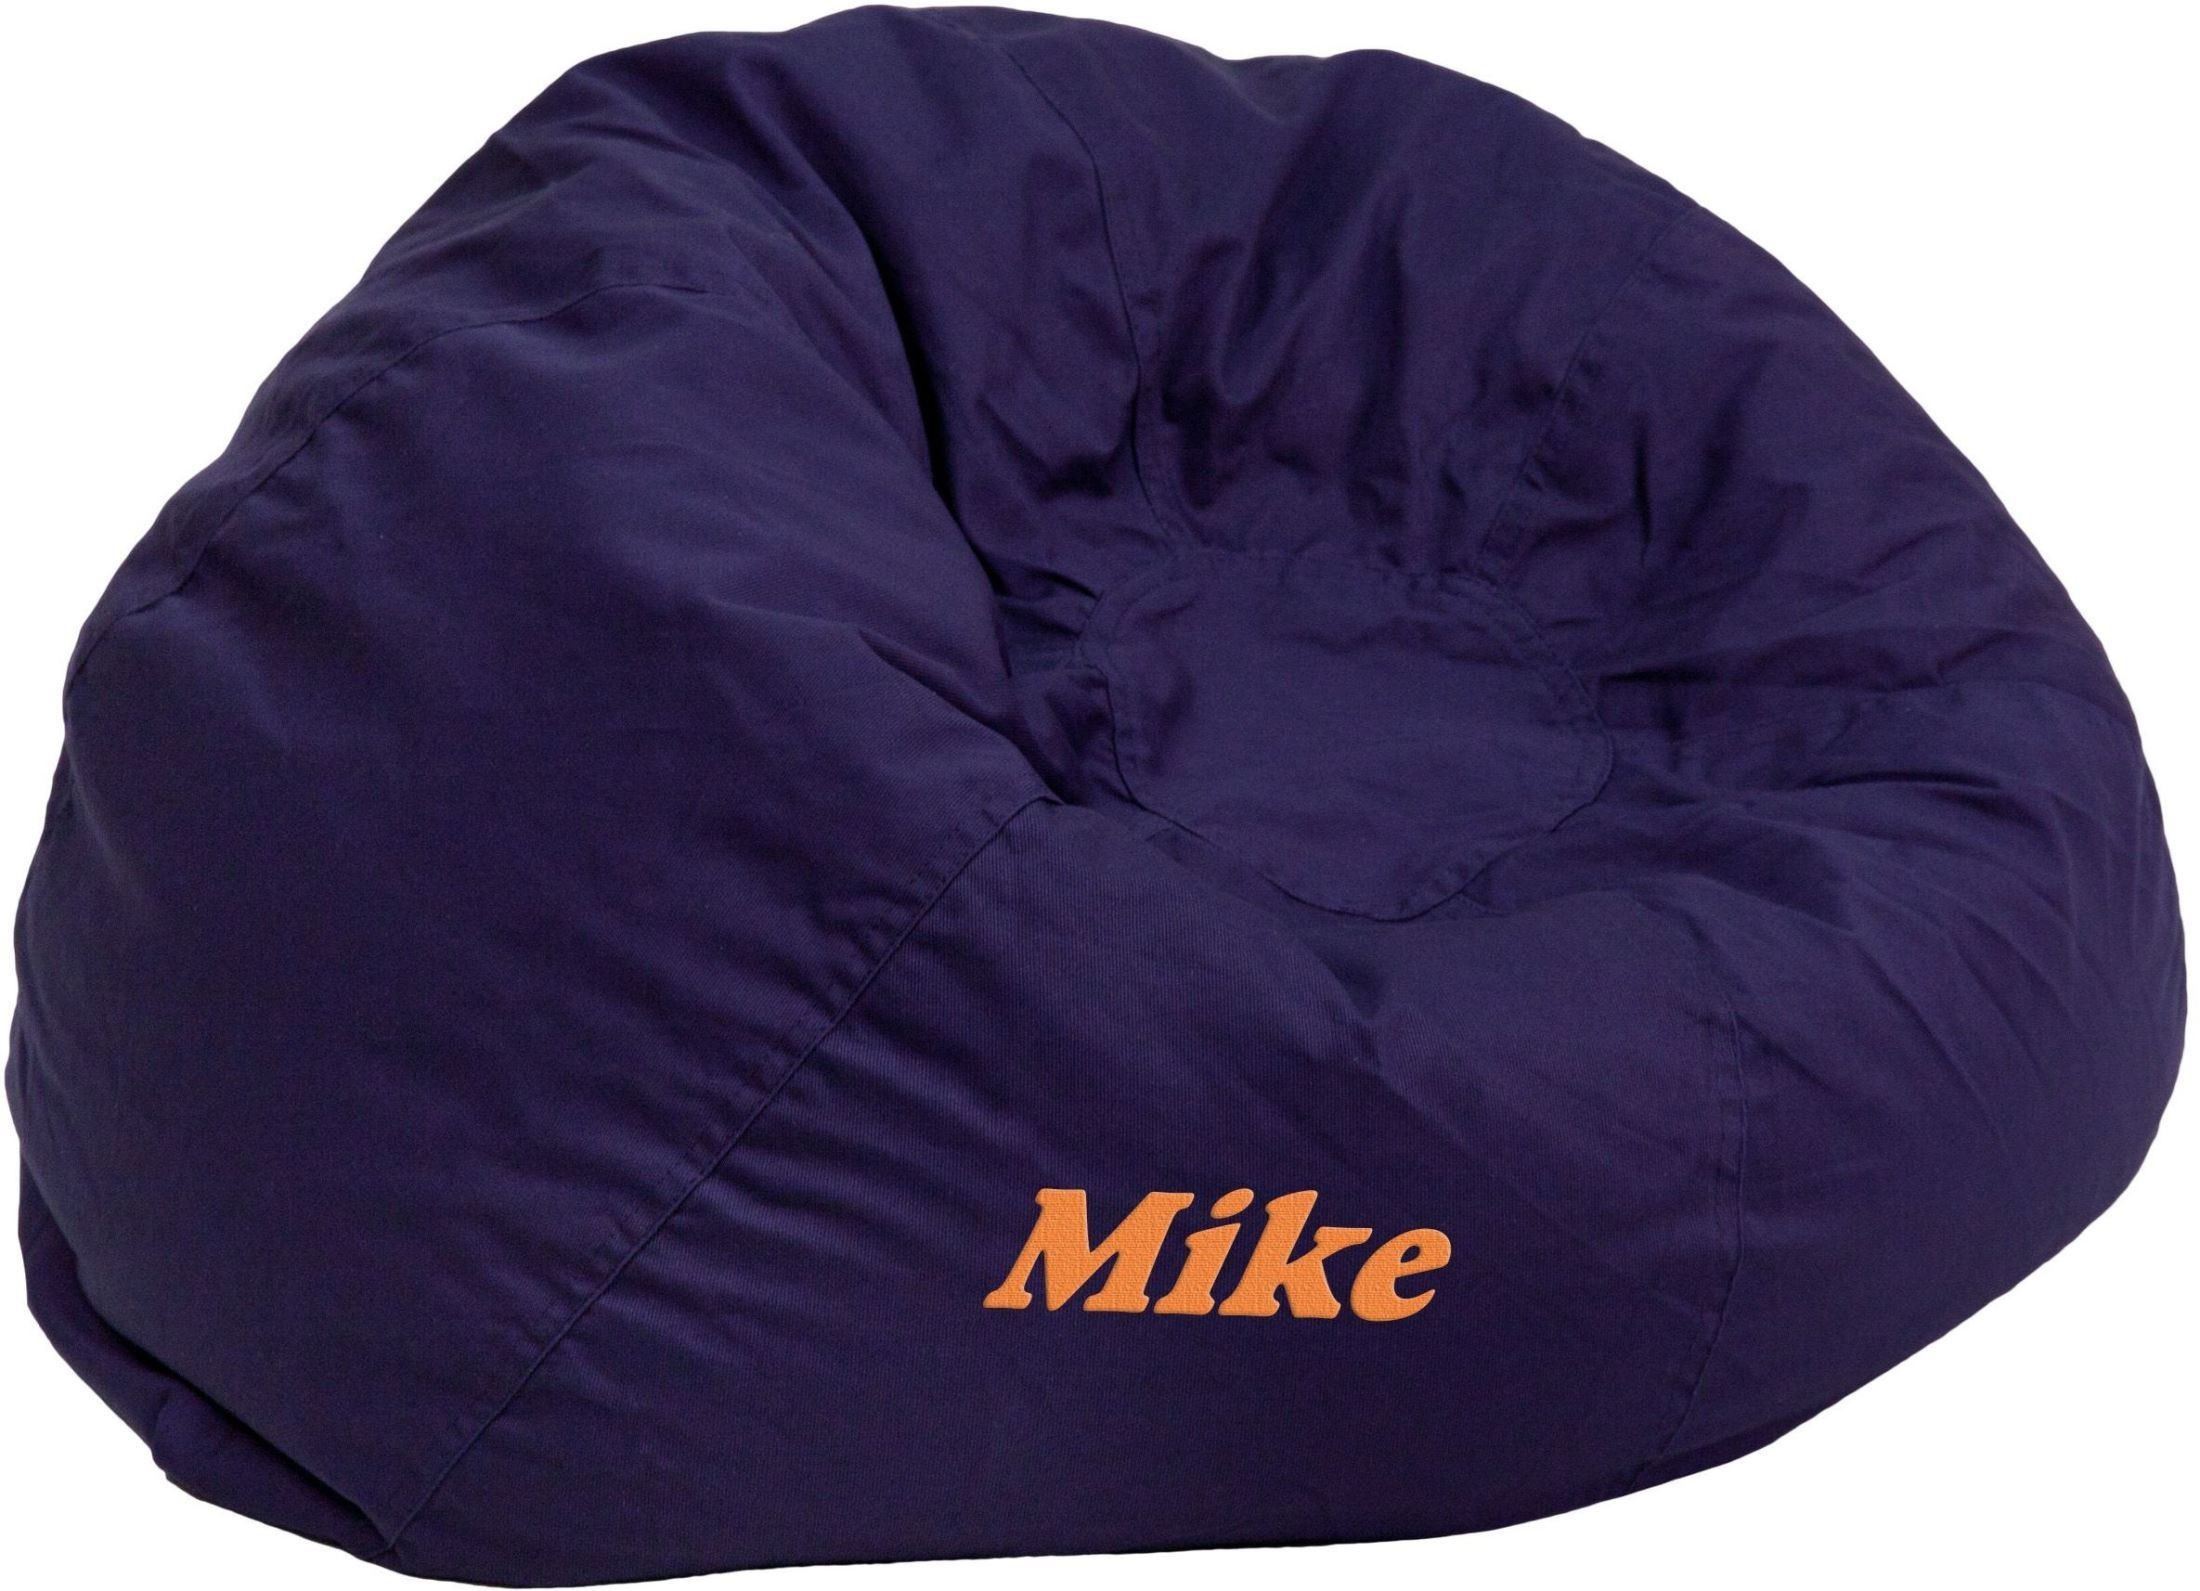 32118 Personalized Small Solid Navy Blue Kids Bean Bag